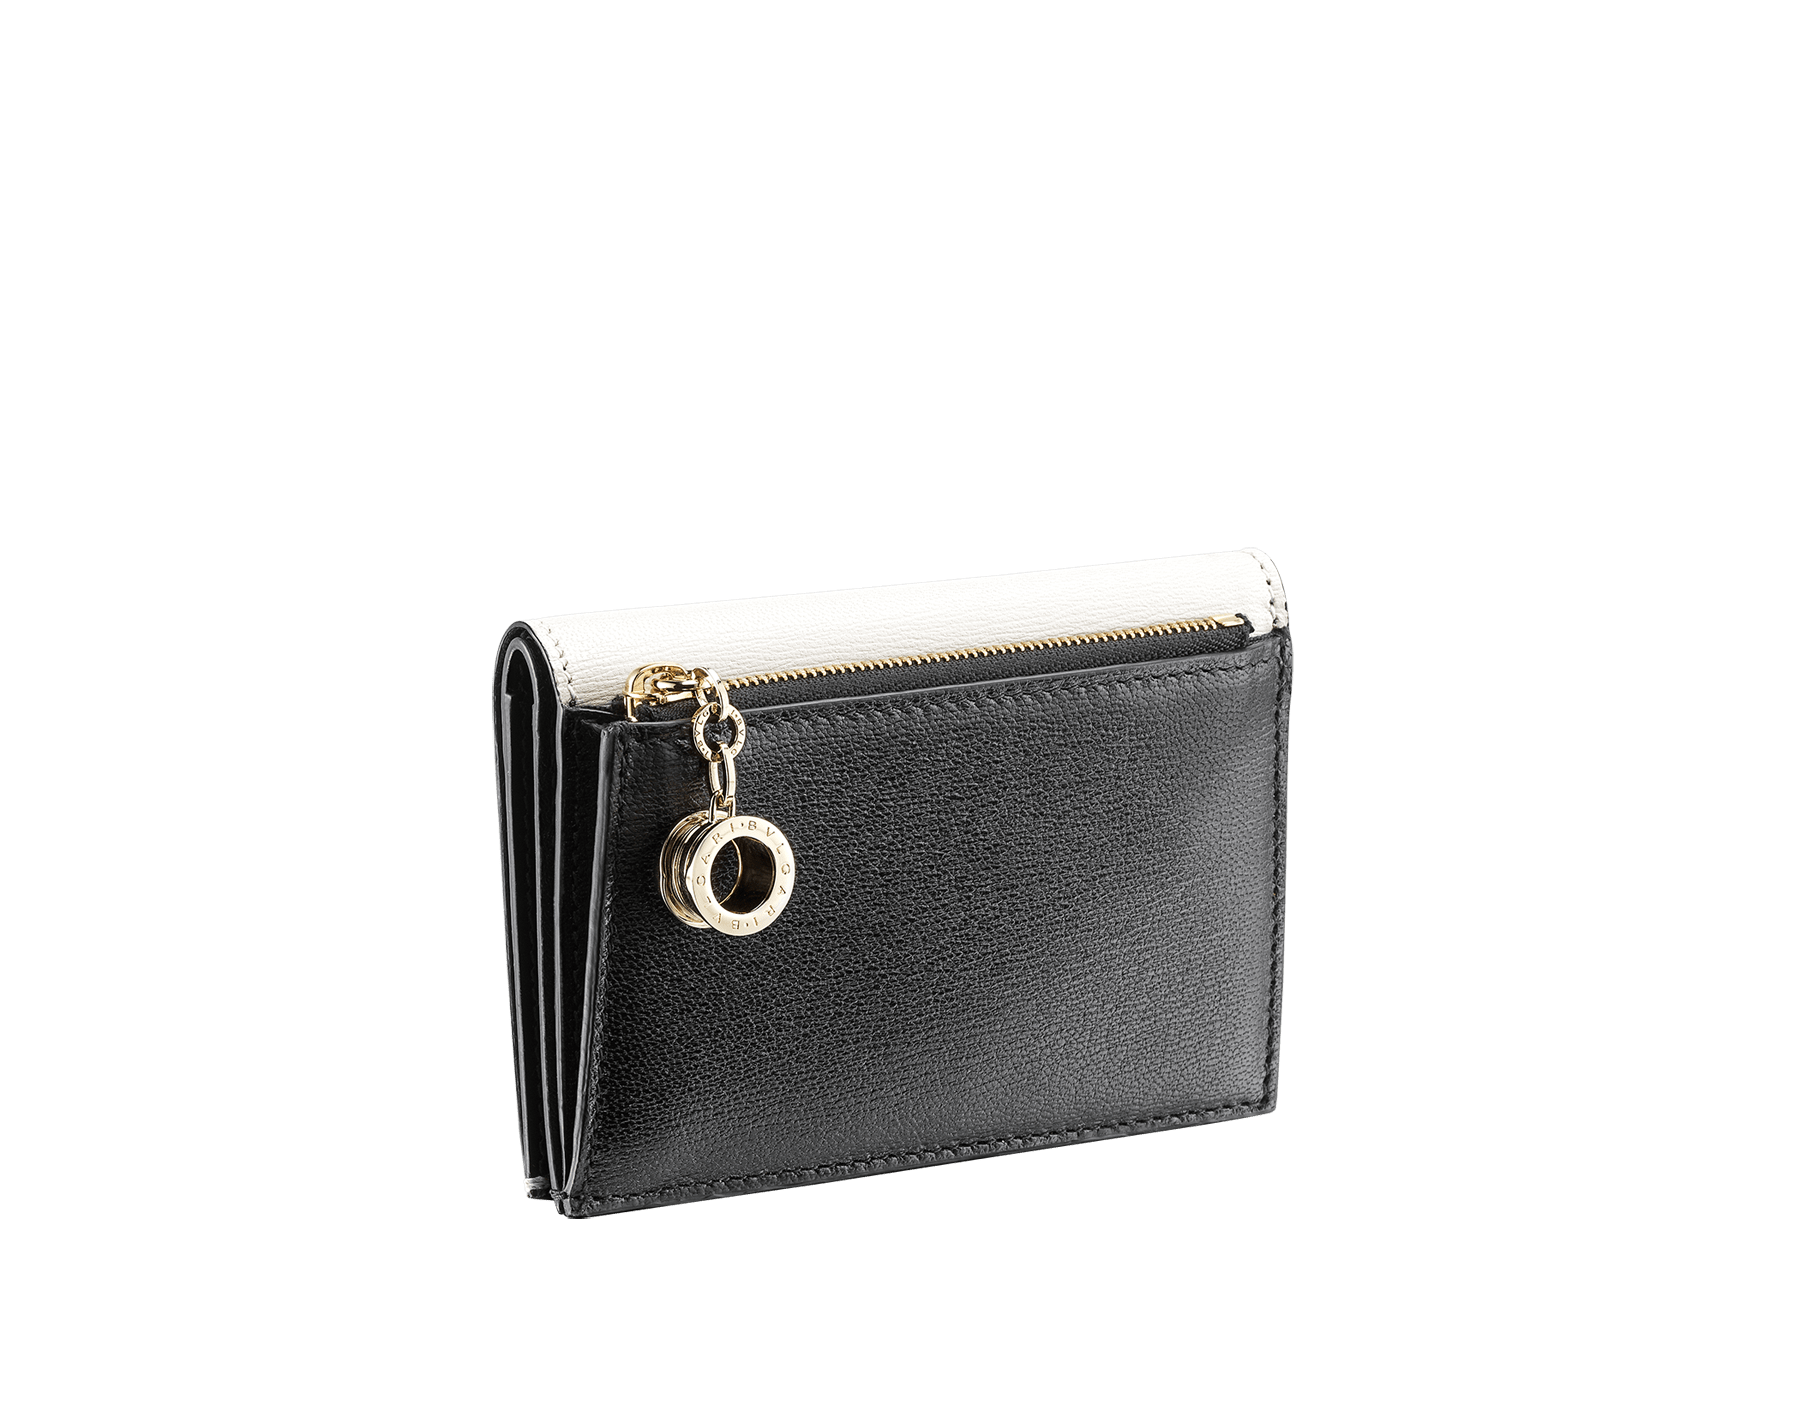 B.zero1 double folded credit card holder in black goatskin. Iconic B.zero1 charm in light gold plated brass. BZA-DOUBLECCHOLD image 3